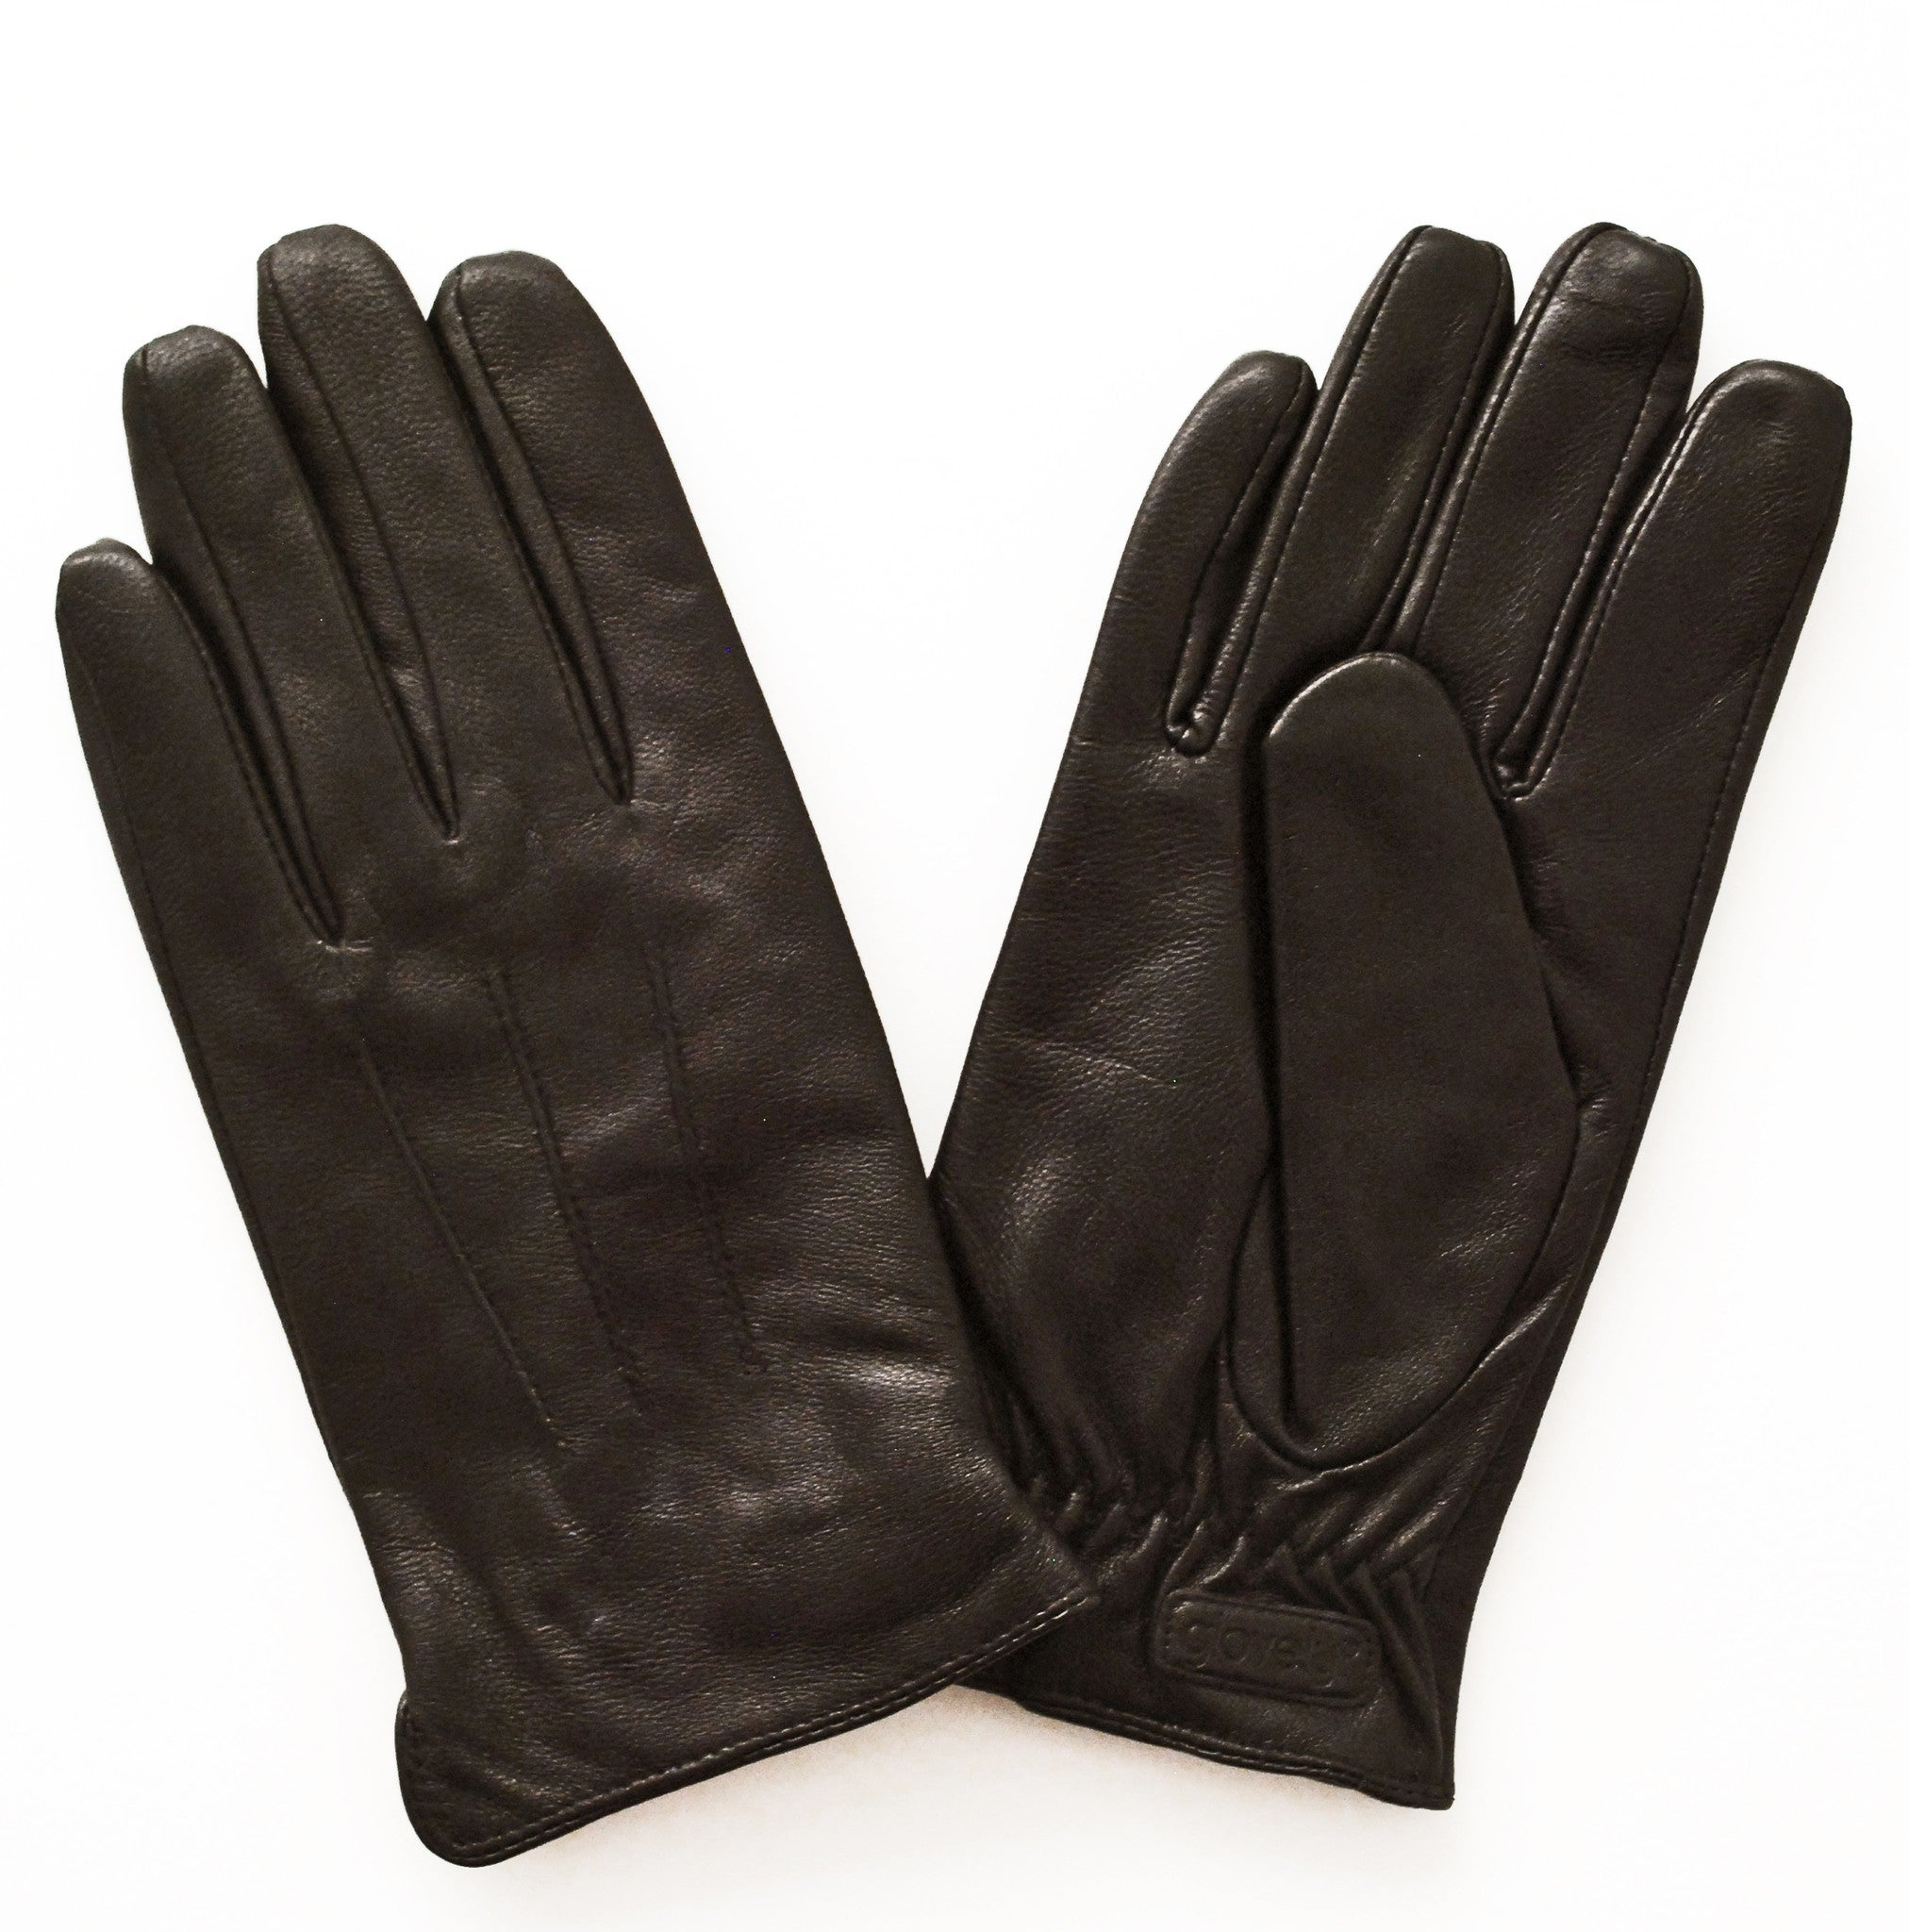 Mens leather driving gloves australia - Mens Leather Gloves Macys Mens Leather Gloves Large Men S Classic Leather Touch Screen Glove